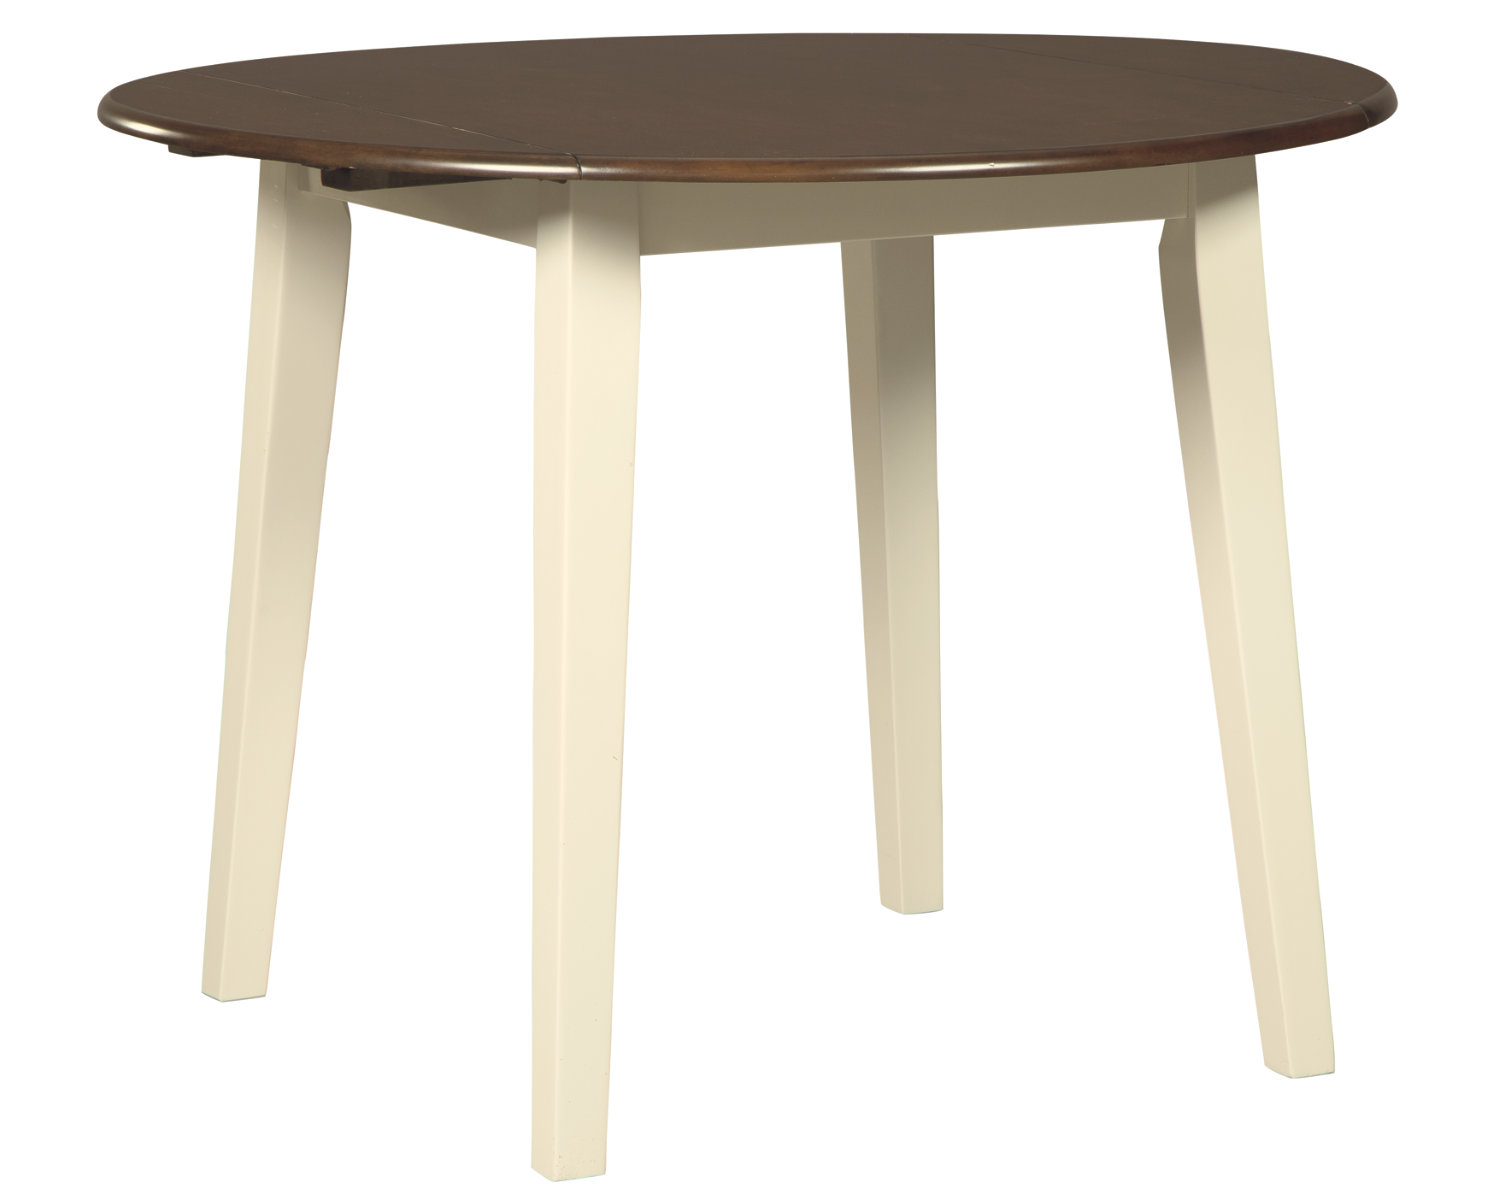 Signature Design By Ashley Woodanville Round Dining Room Drop Leaf Table Casual Style Cream Brown Walmart Com Walmart Com